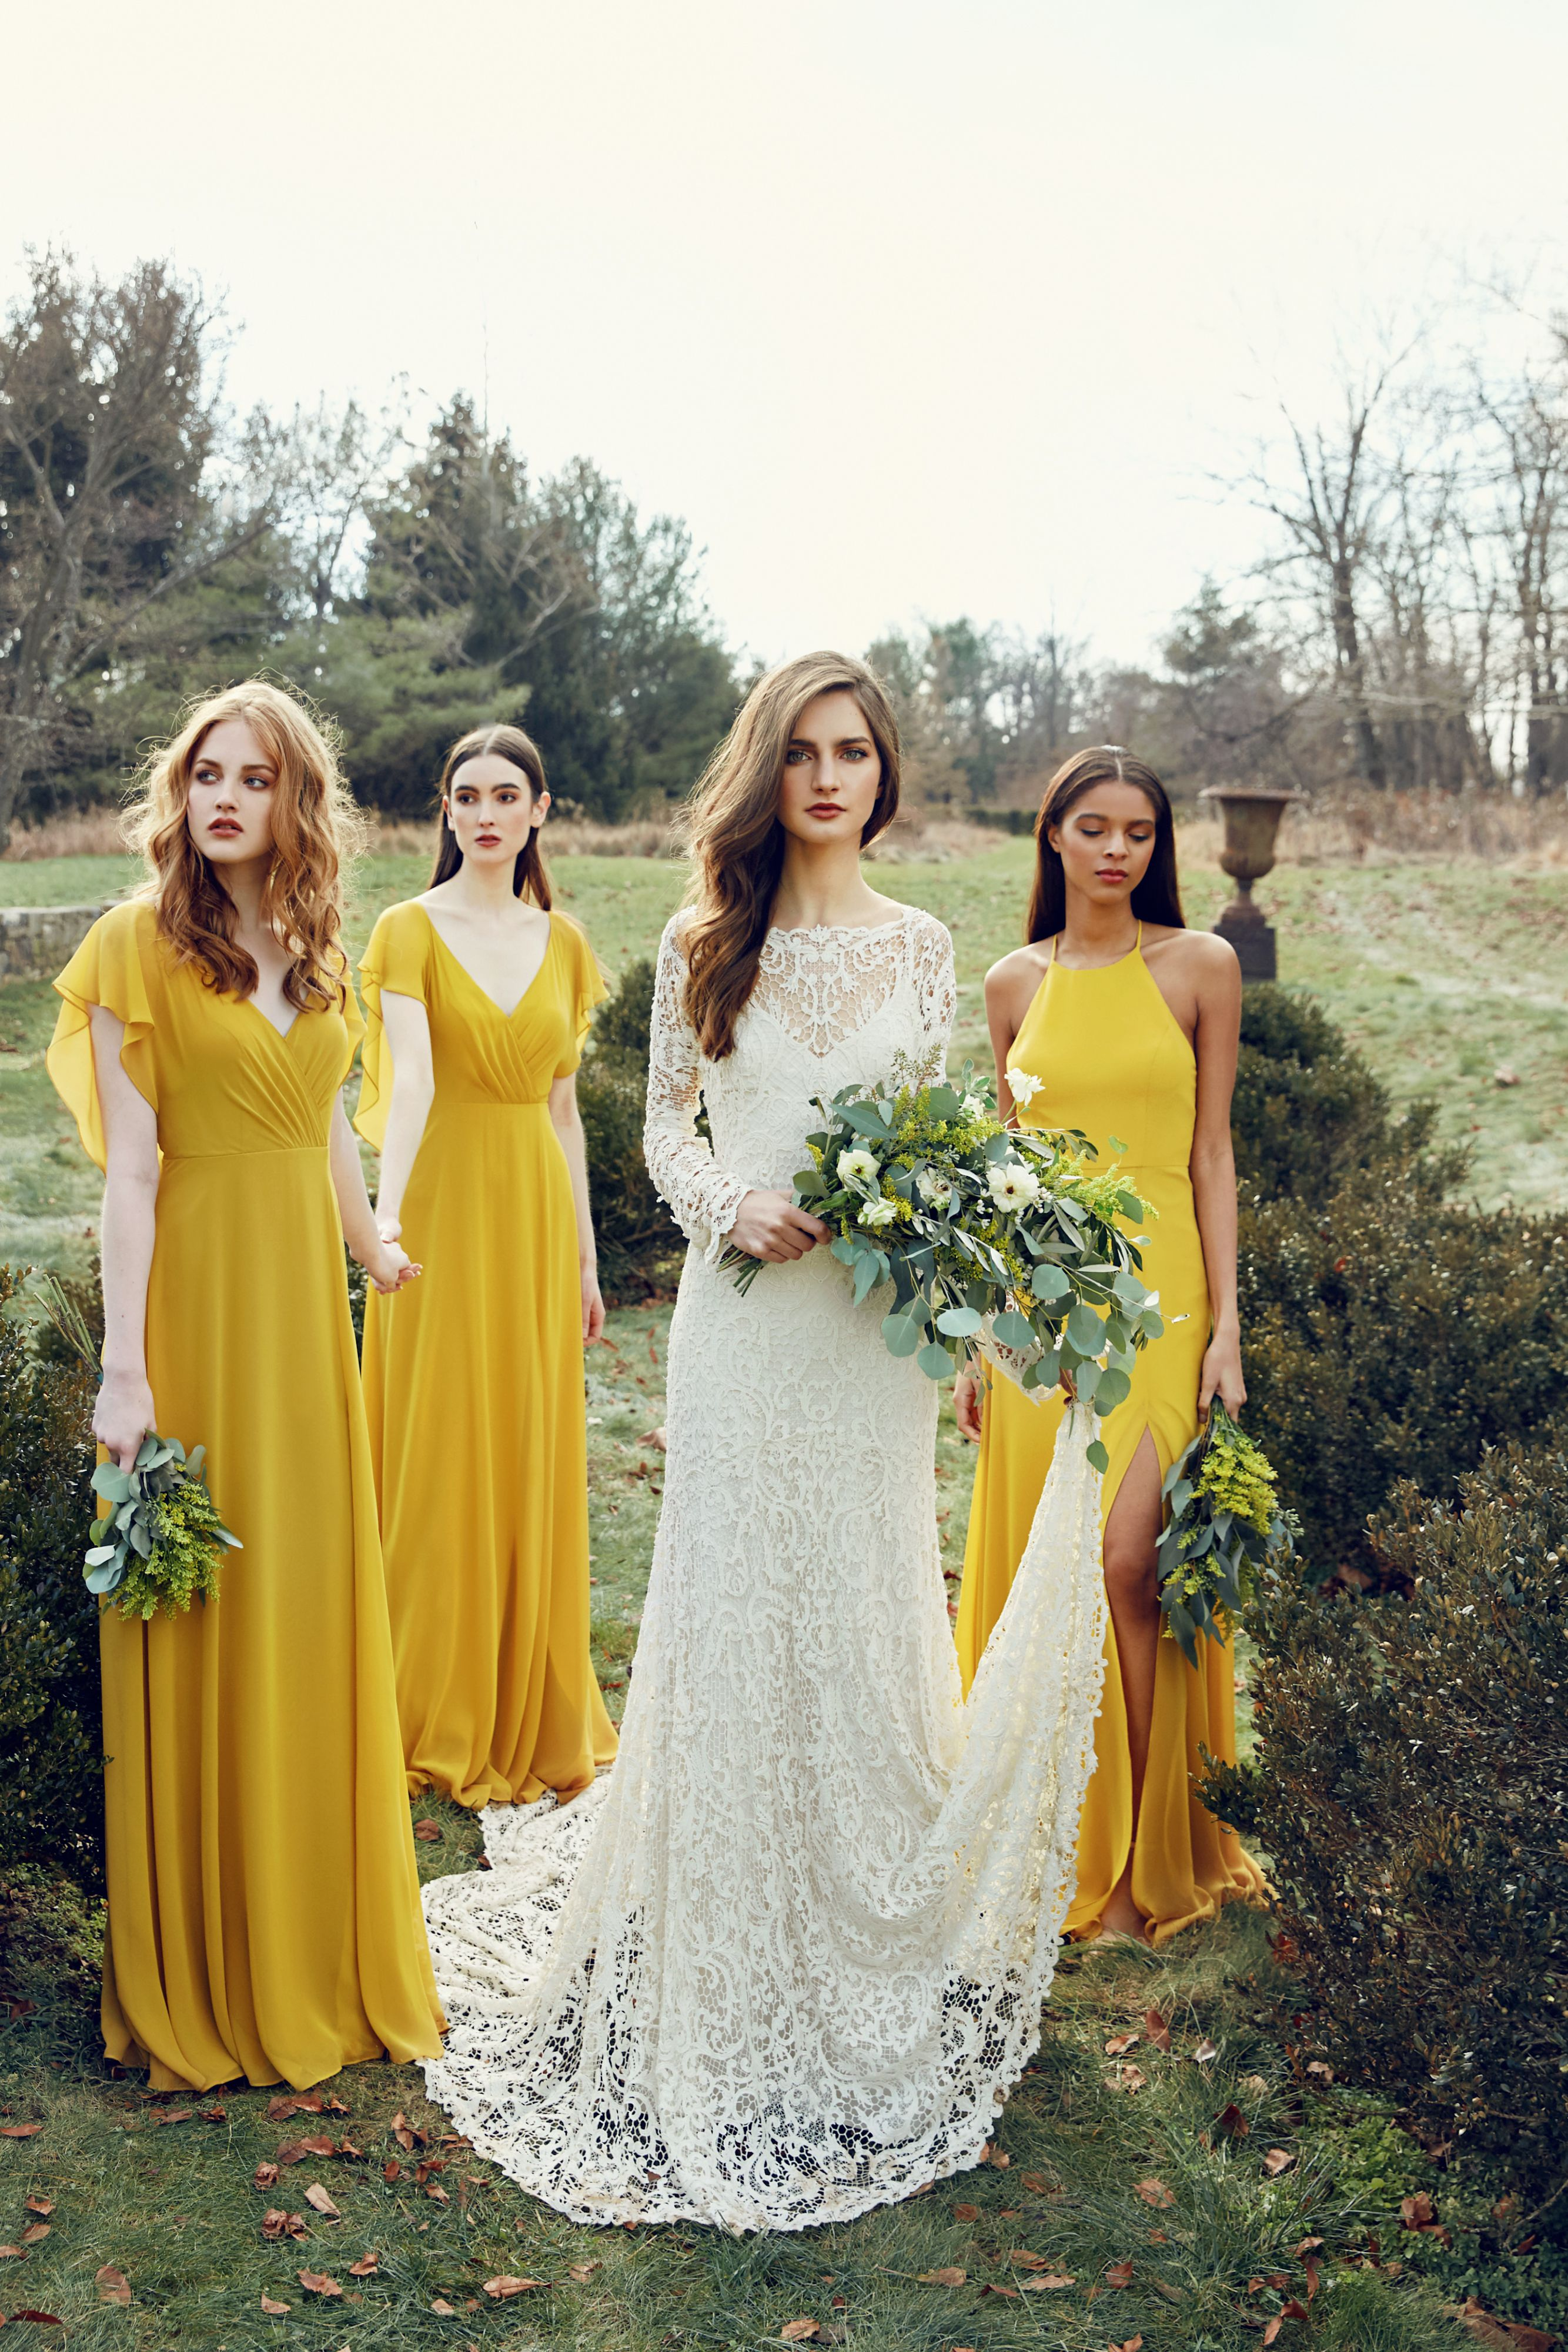 3b99fb1a1d592 Chartreuse bridesmaids dresses paired perfectly with a long sleeve lace wedding  dress. This bridal squad is killing it! Dresses from Jenny Yoo Collection.